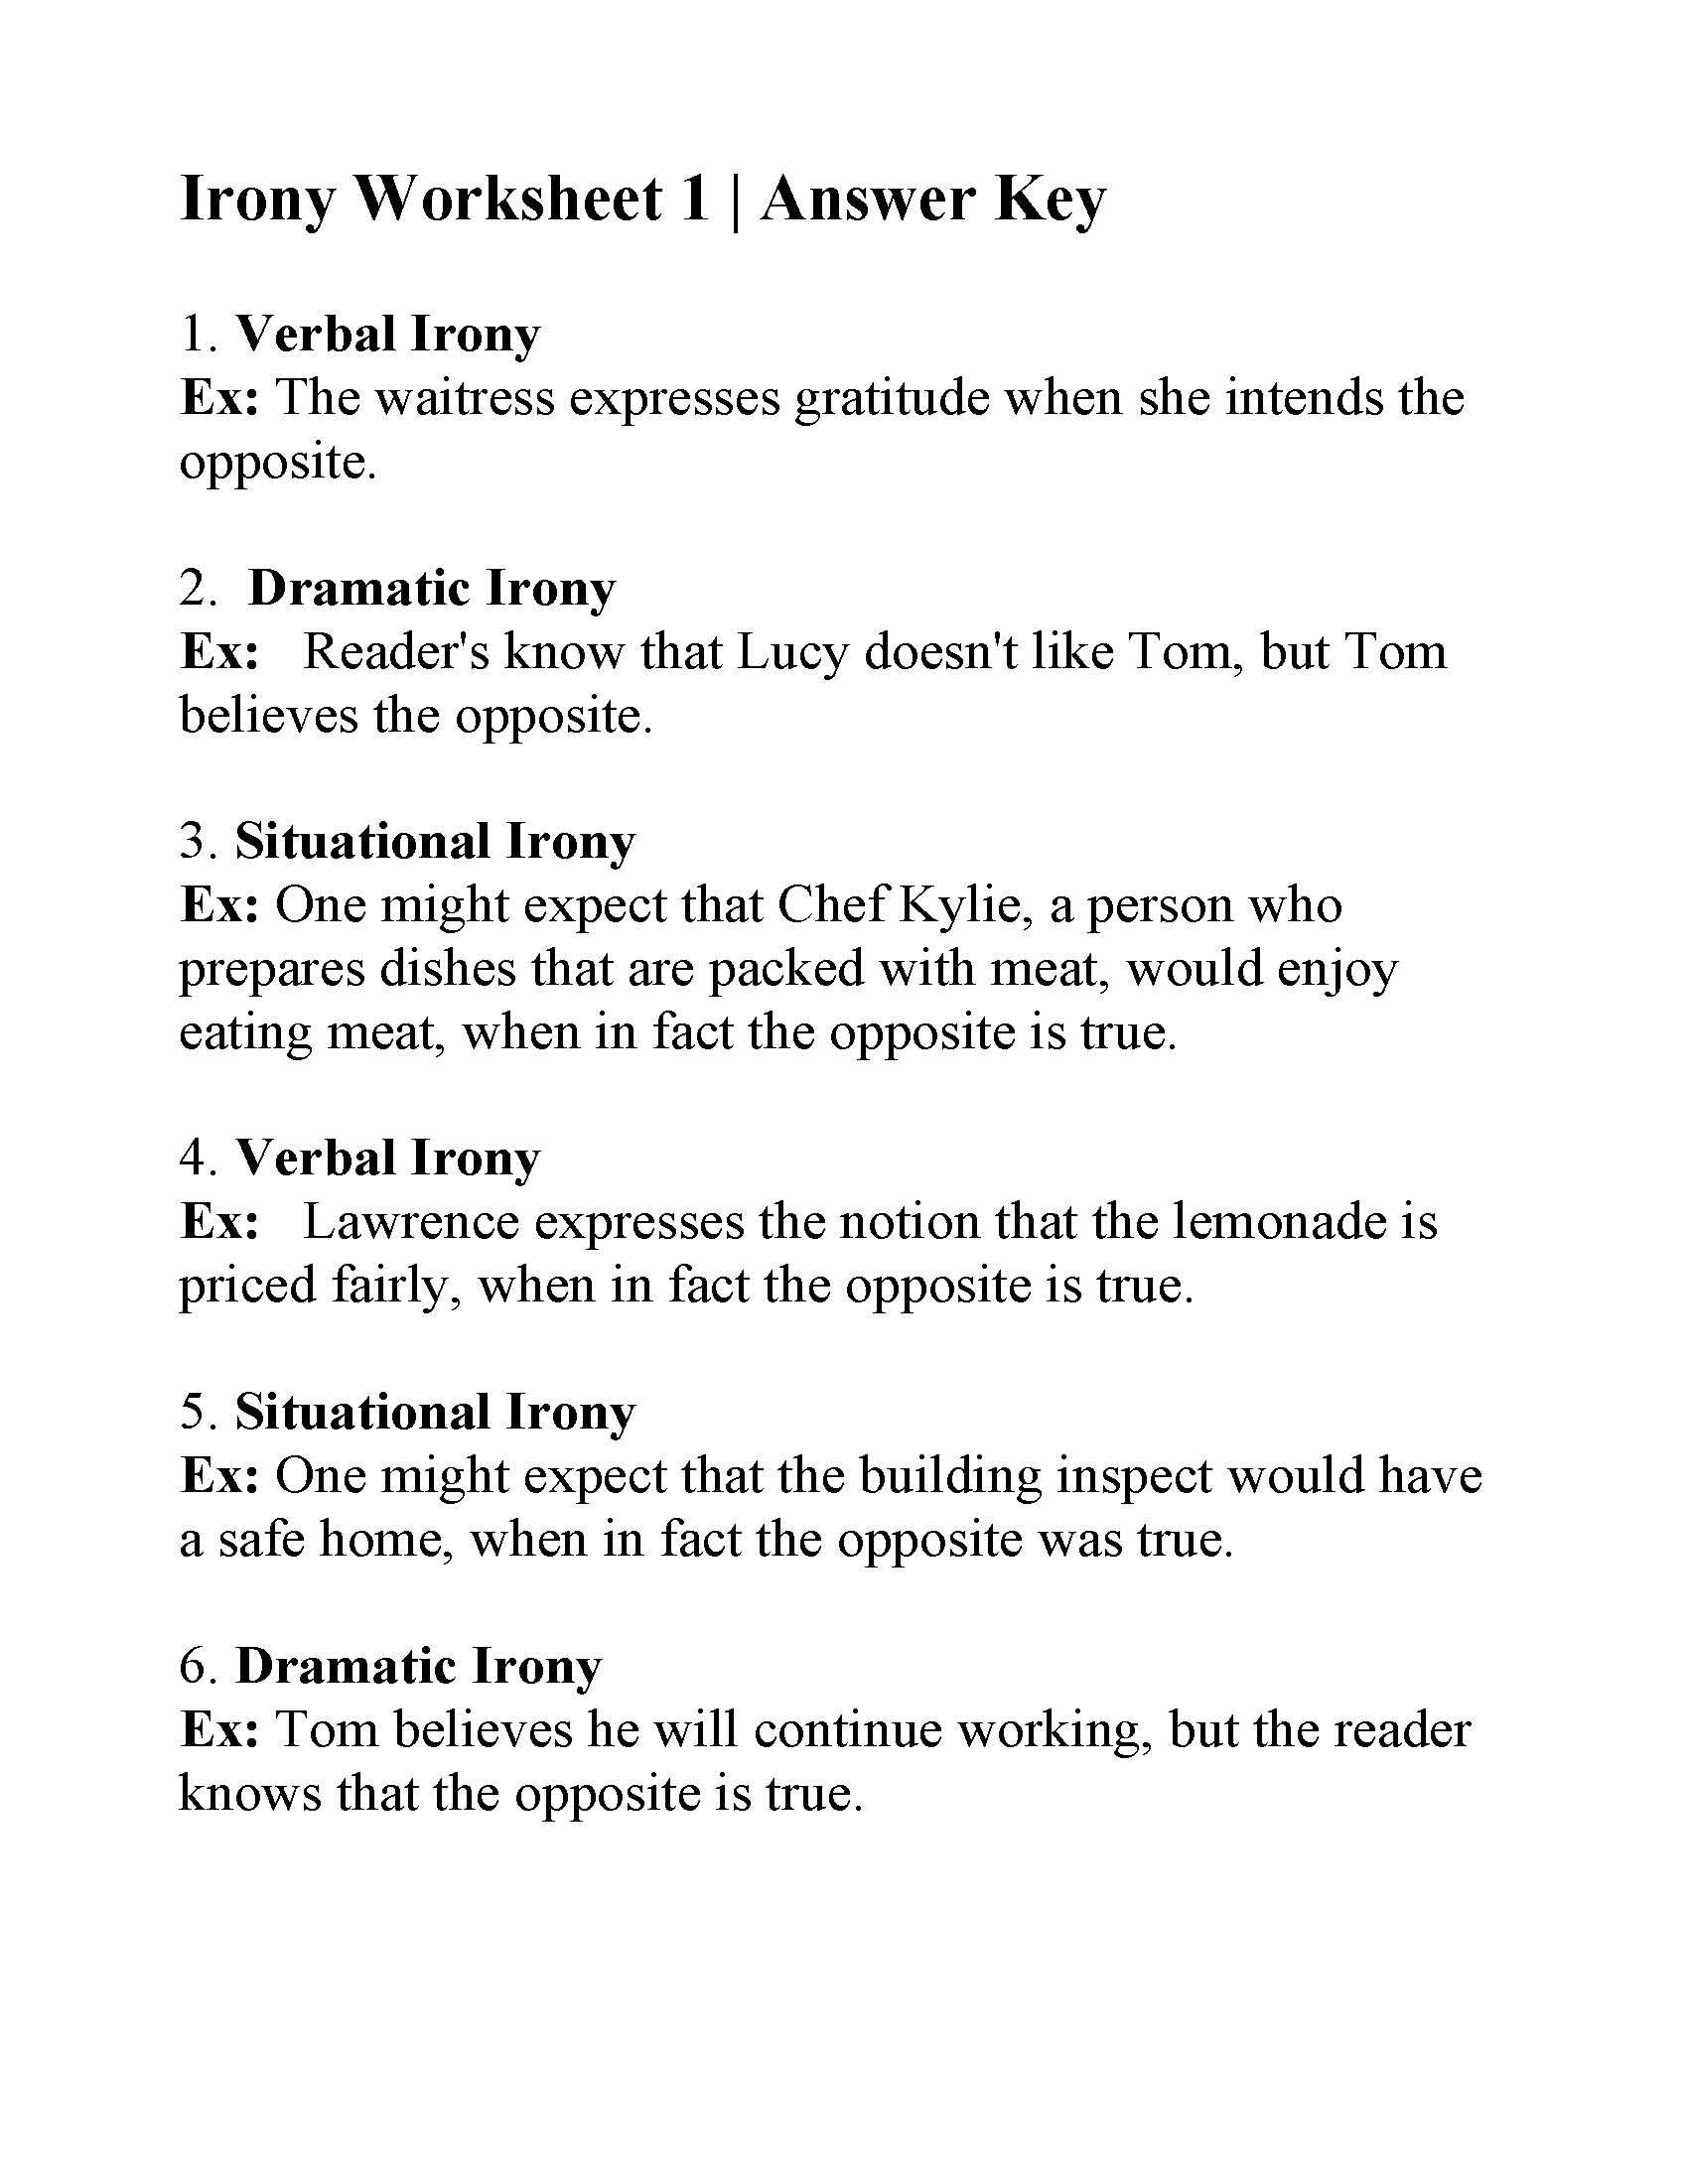 Irony Worksheet 1 Answers